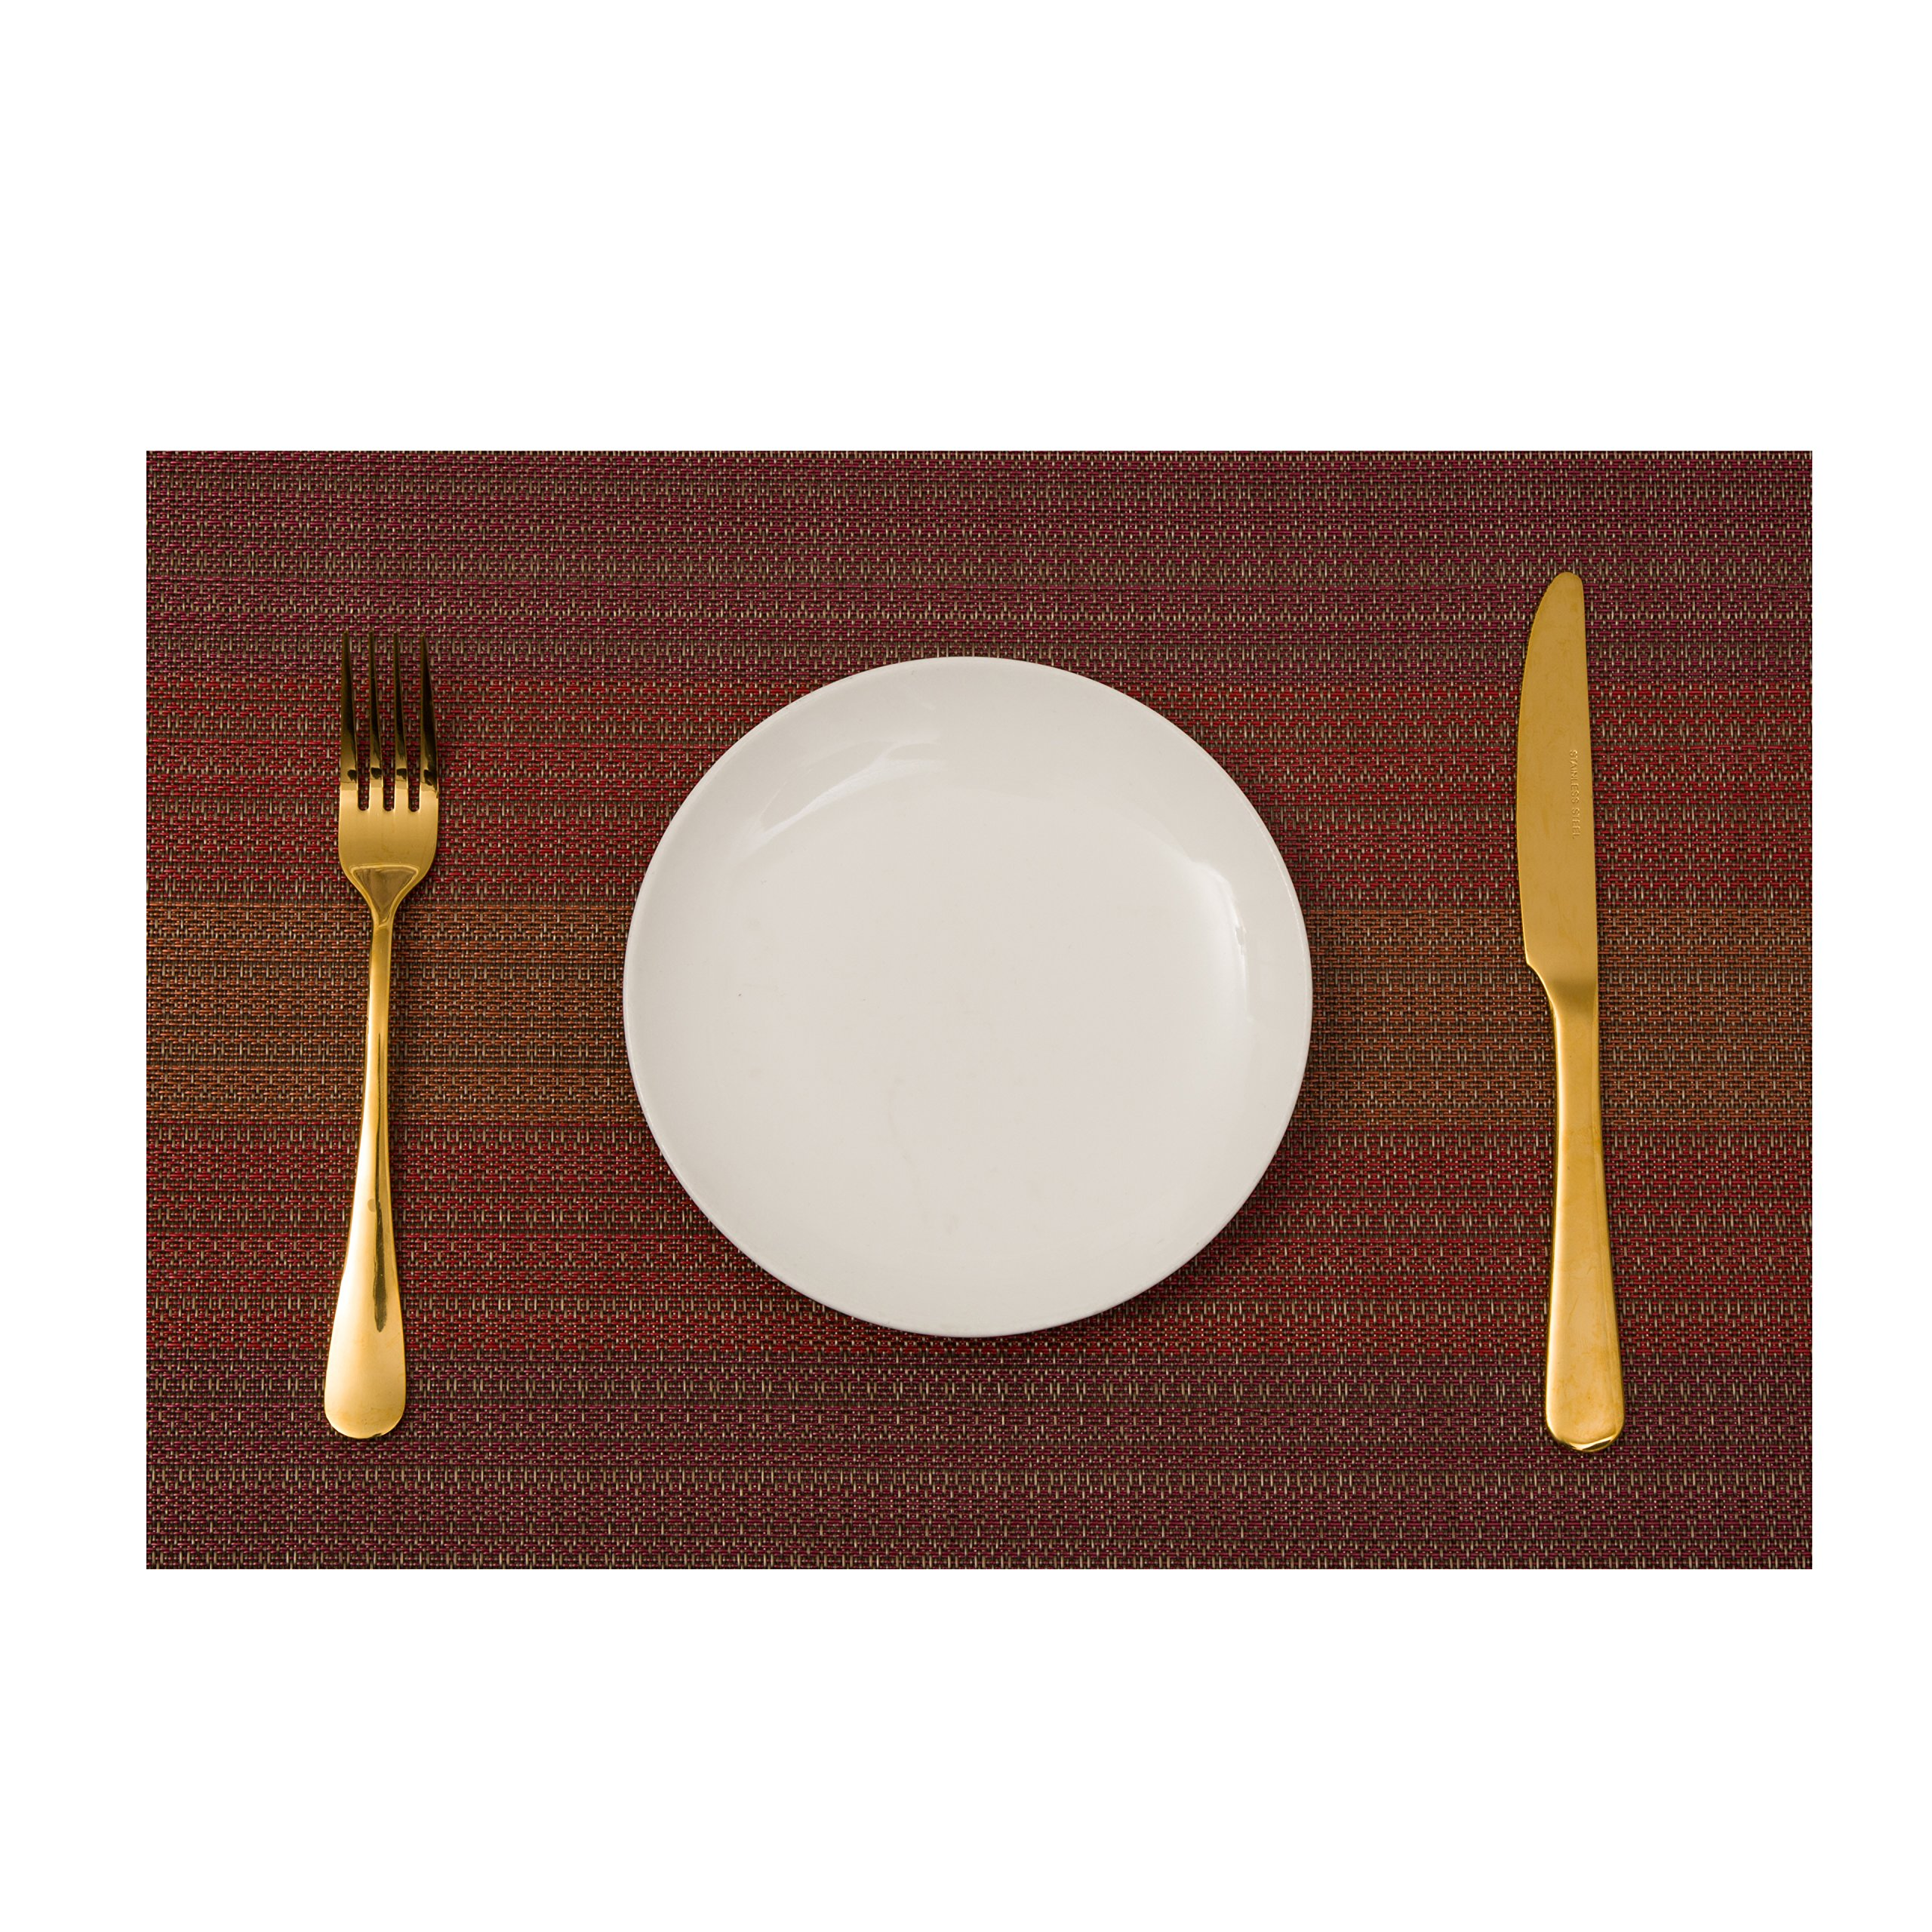 Plain Jane Placemats, Table Mats Non-Slip Washable Place Mats, Heat Resistant Kitchen Tablemats for Dining Table, Placemat Set of 4, Red. by Plain Jane (Image #3)